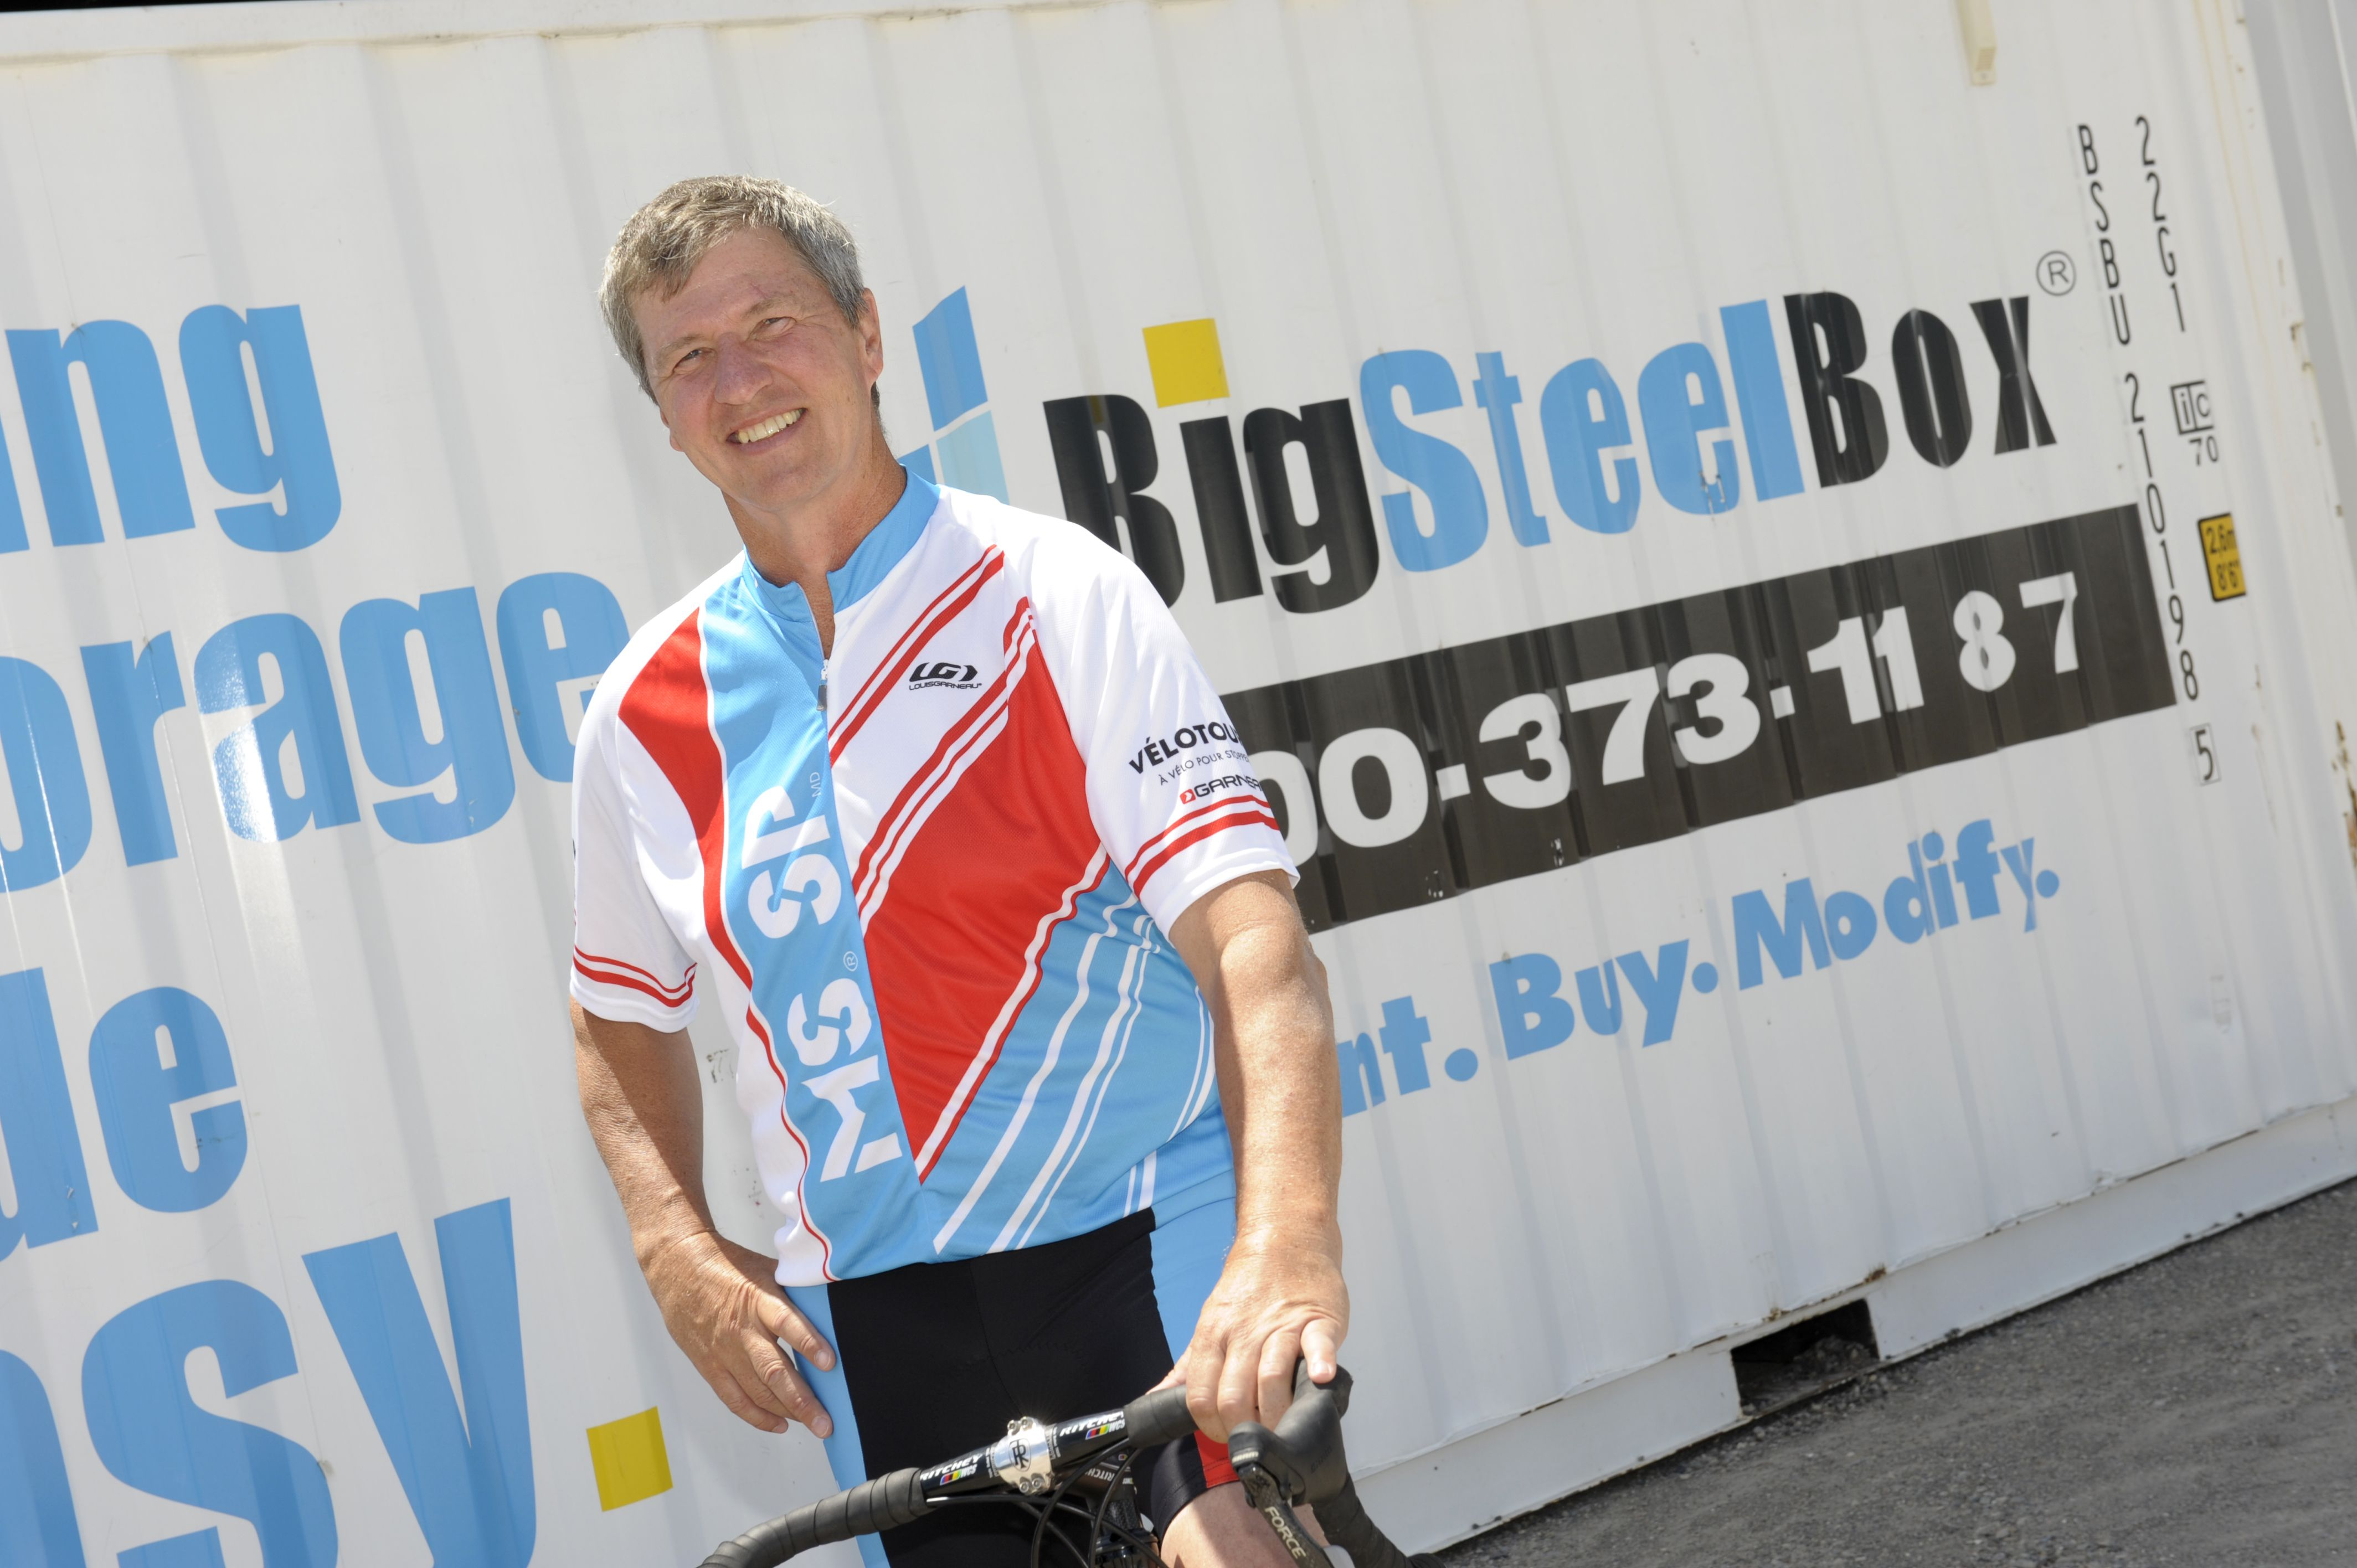 News release: BigSteelBox offers refreshment stops for new 150-km route as Canada's largest MS Bike event takes place from Grand Bend to London July 27 to 28.  http://dhzmedia.ca/?p2=/modules/blog/viewcomments.jsp=172